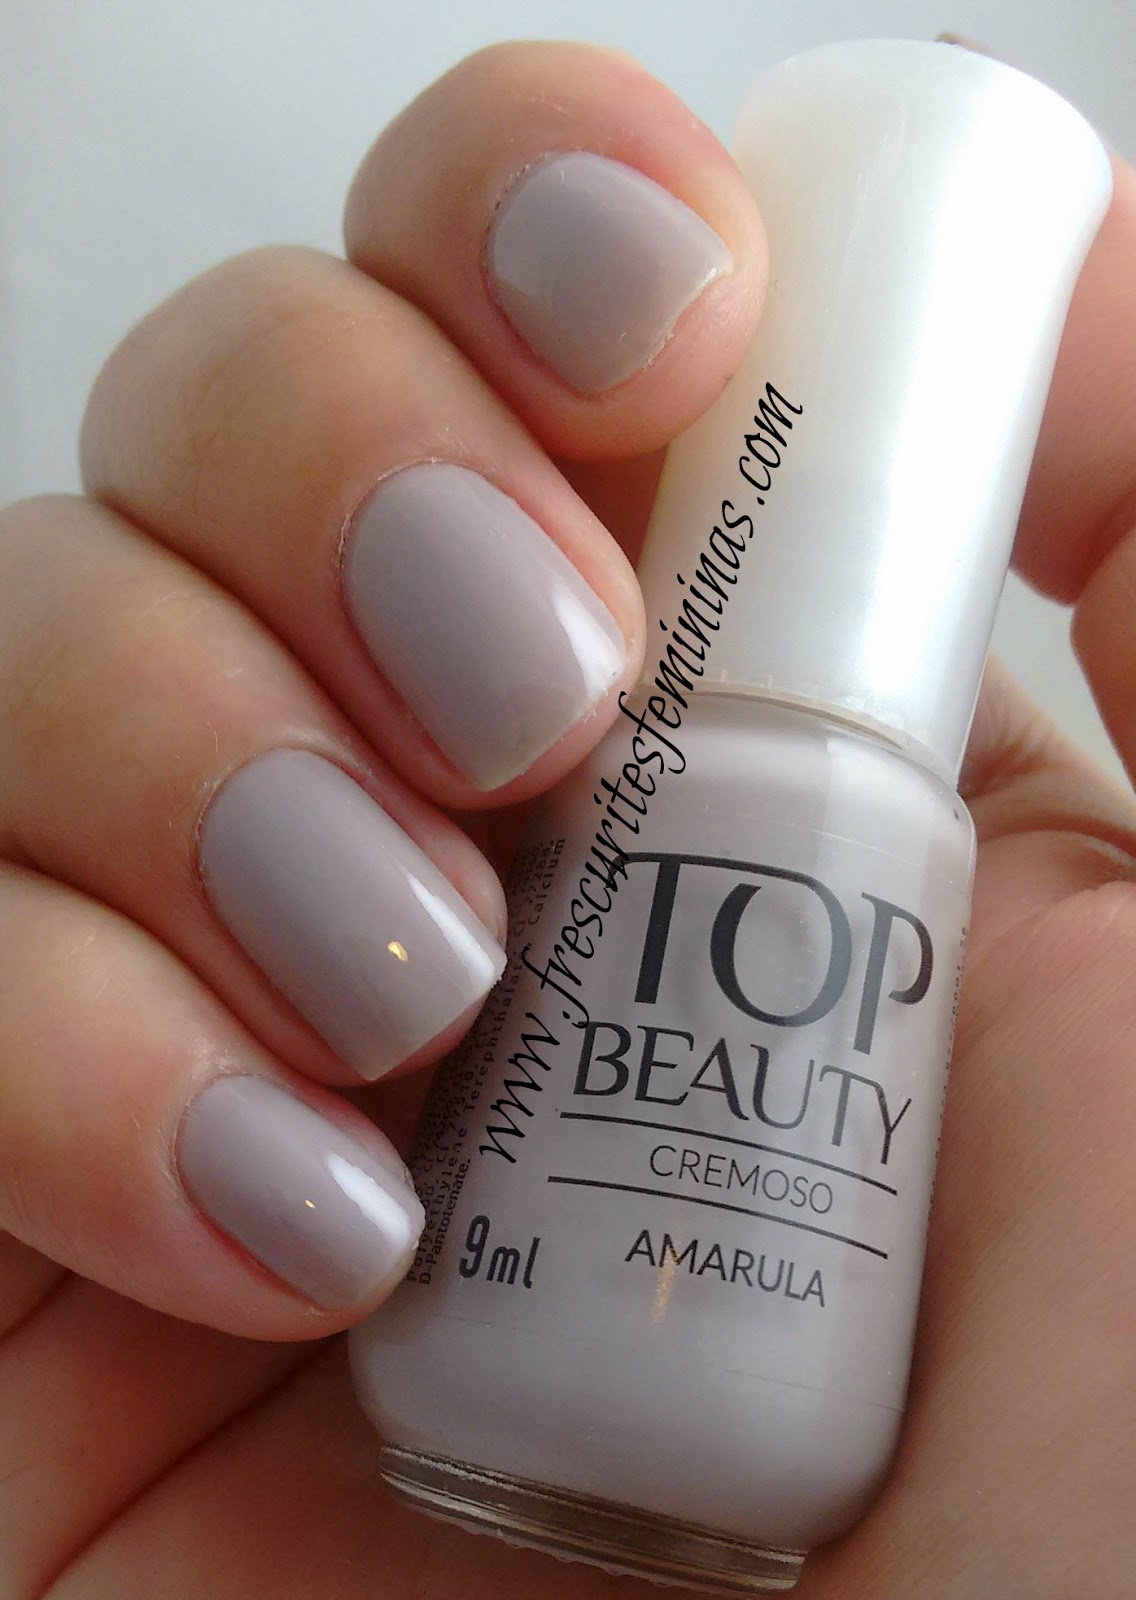 Esmalte, Top Beauty